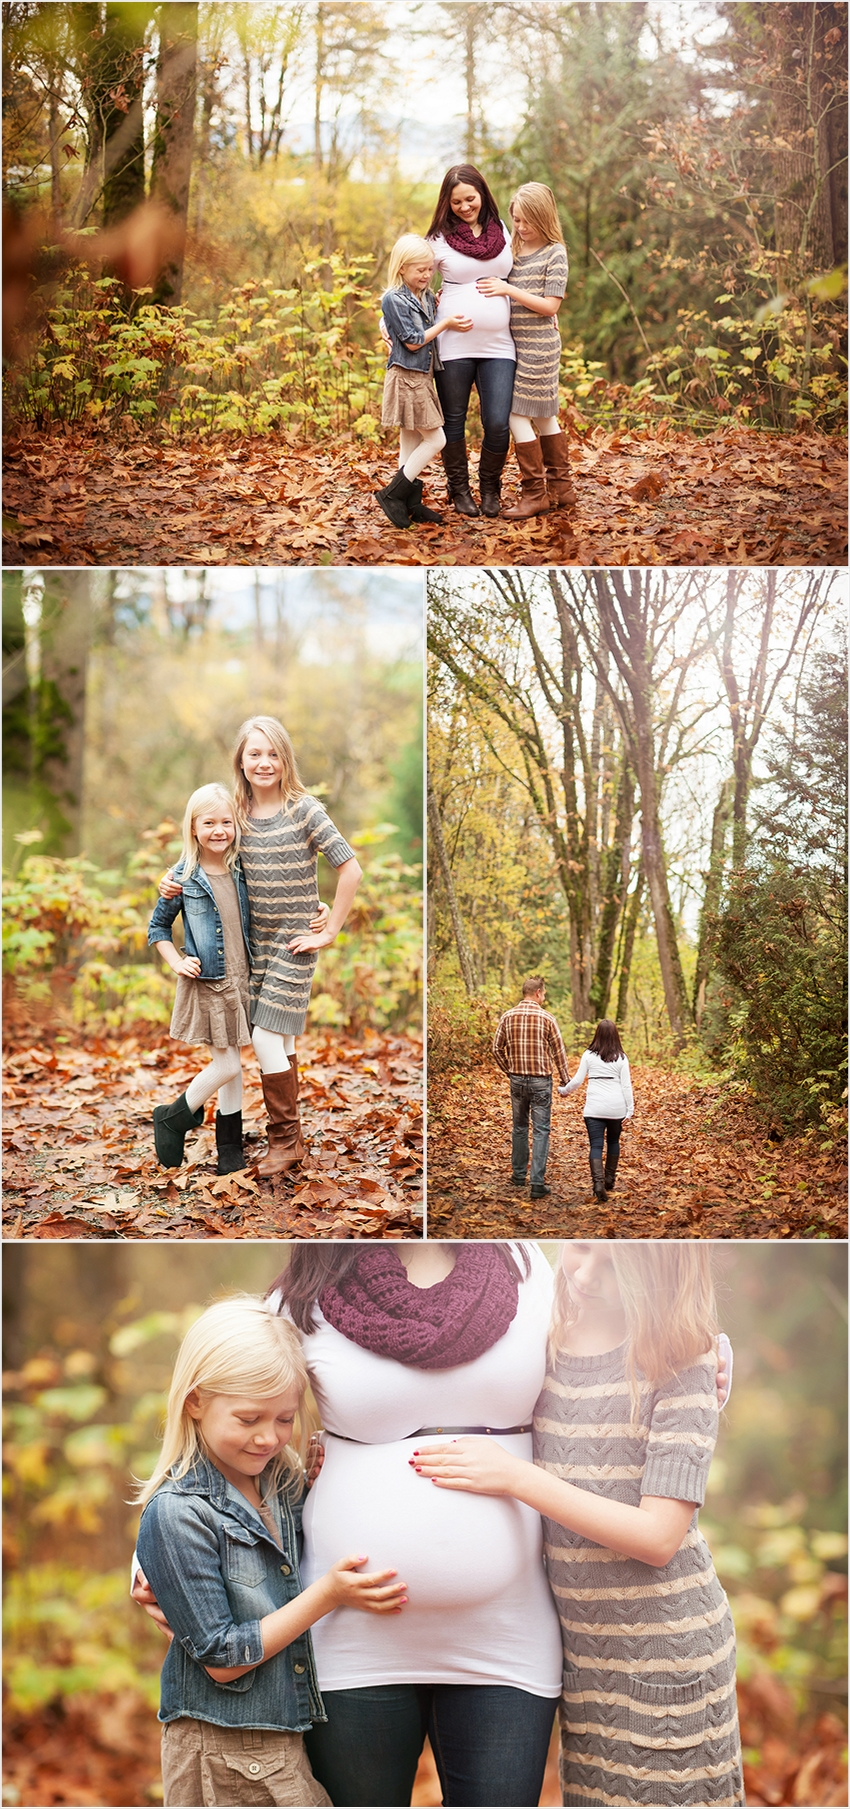 abbotsford-family-maternity-photographer-005-side-5